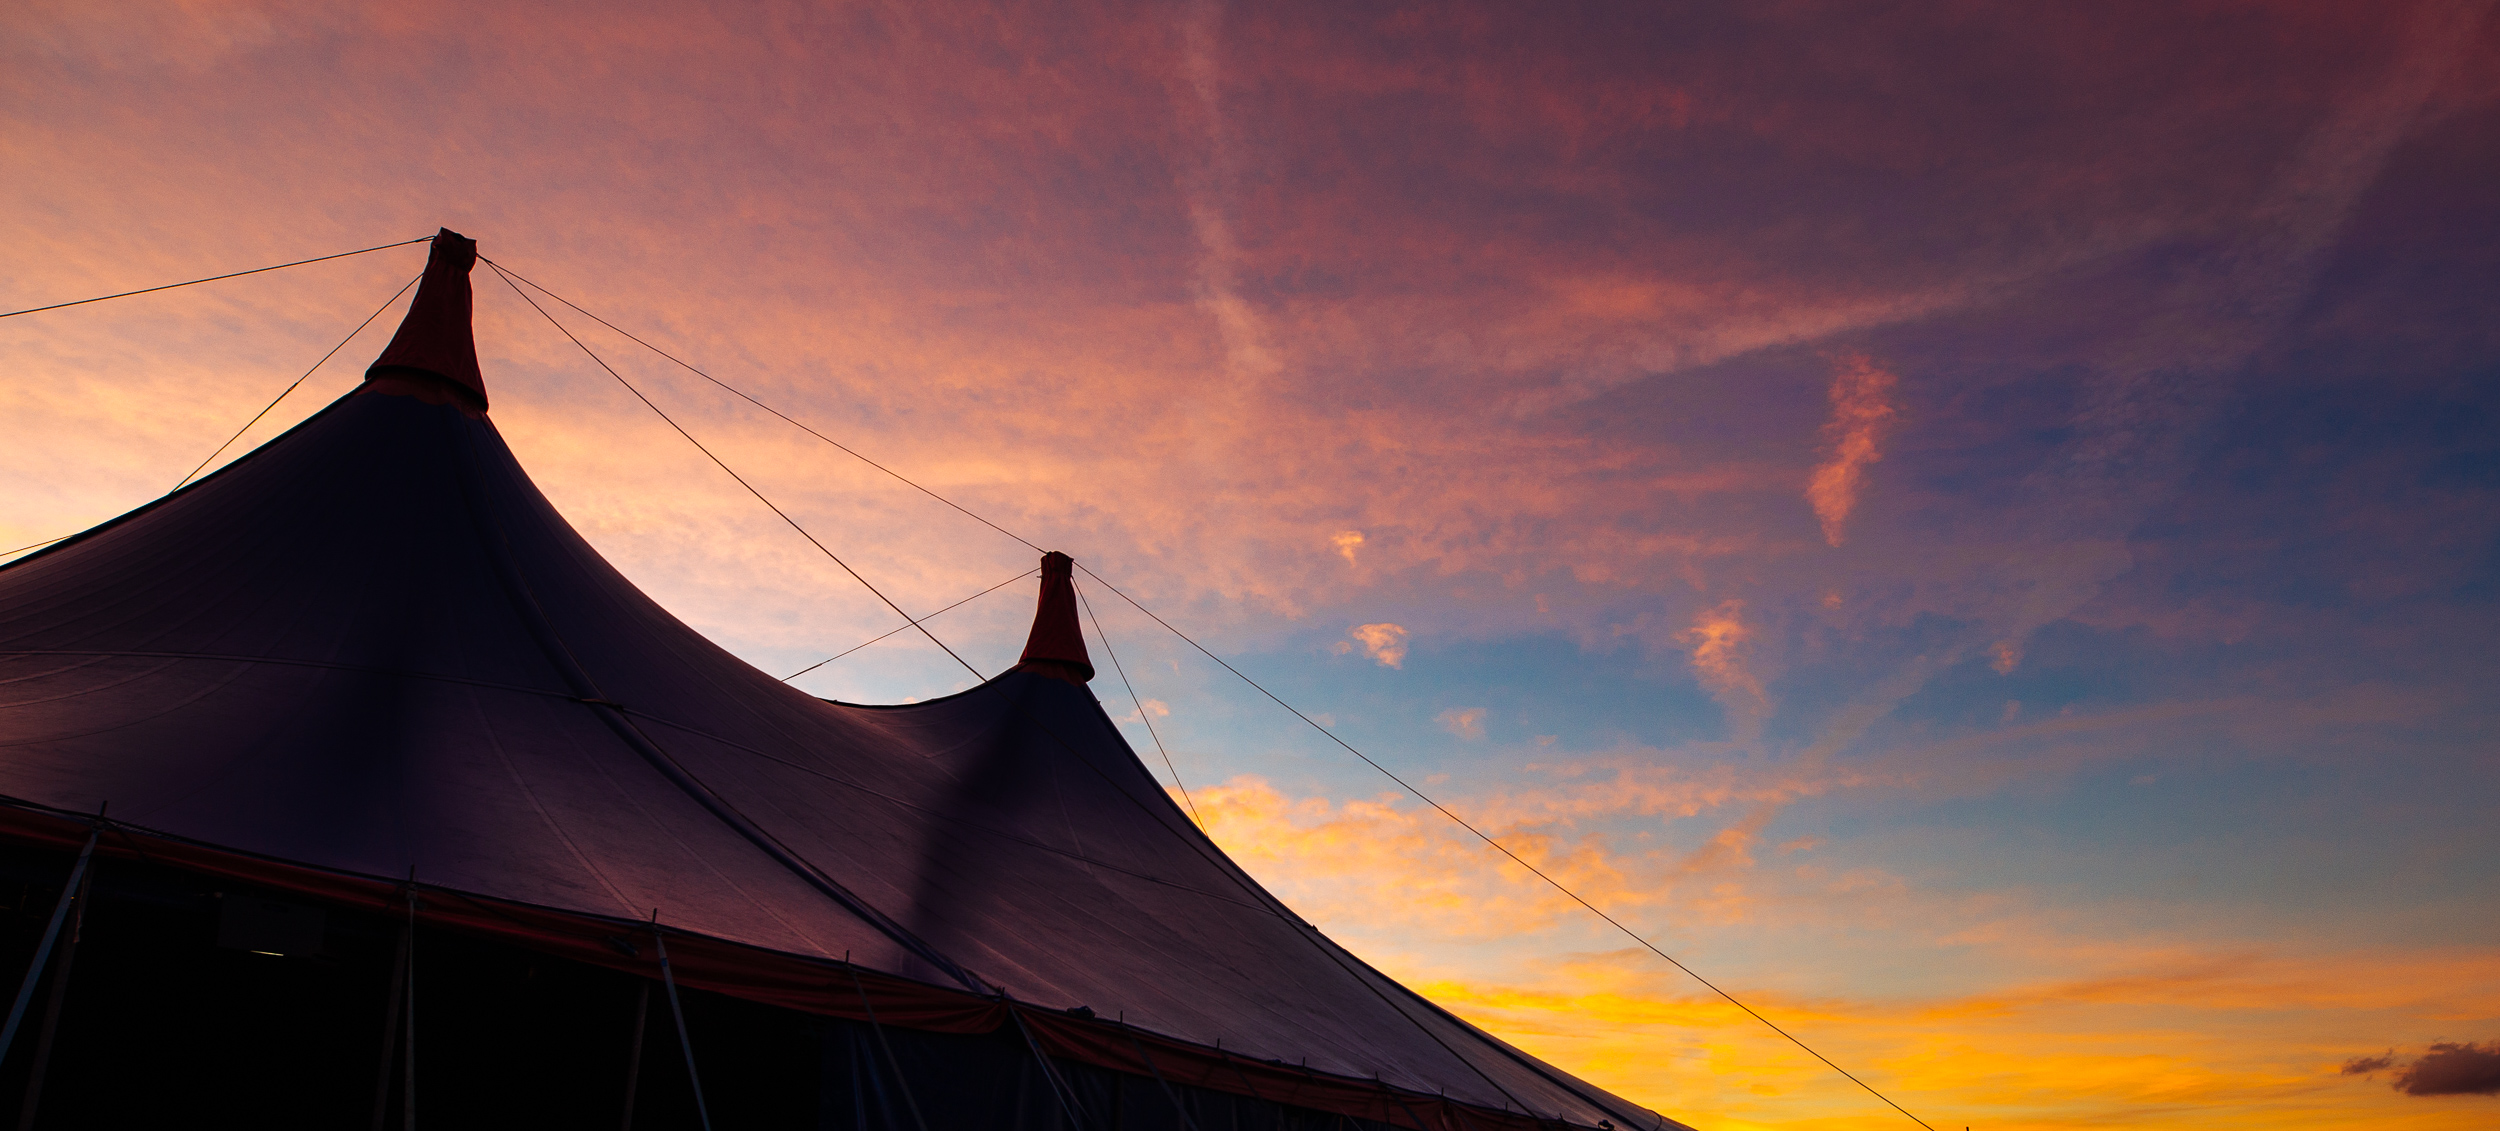 Sunset at Leeds Festival